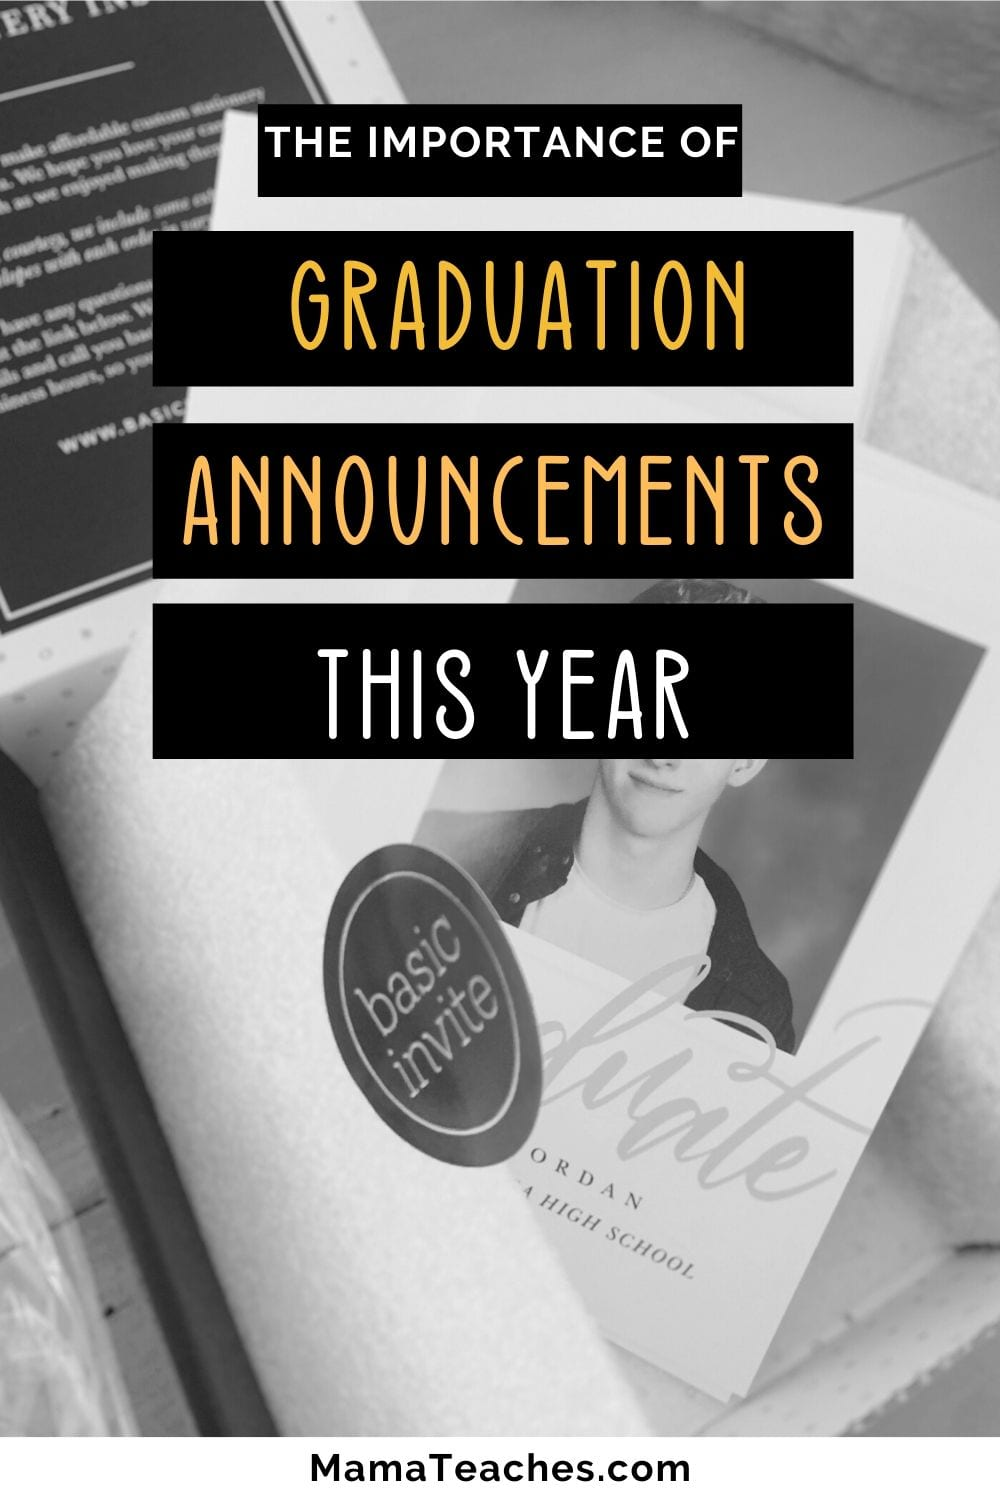 Graduation Announcements - Why They're So Important This Year